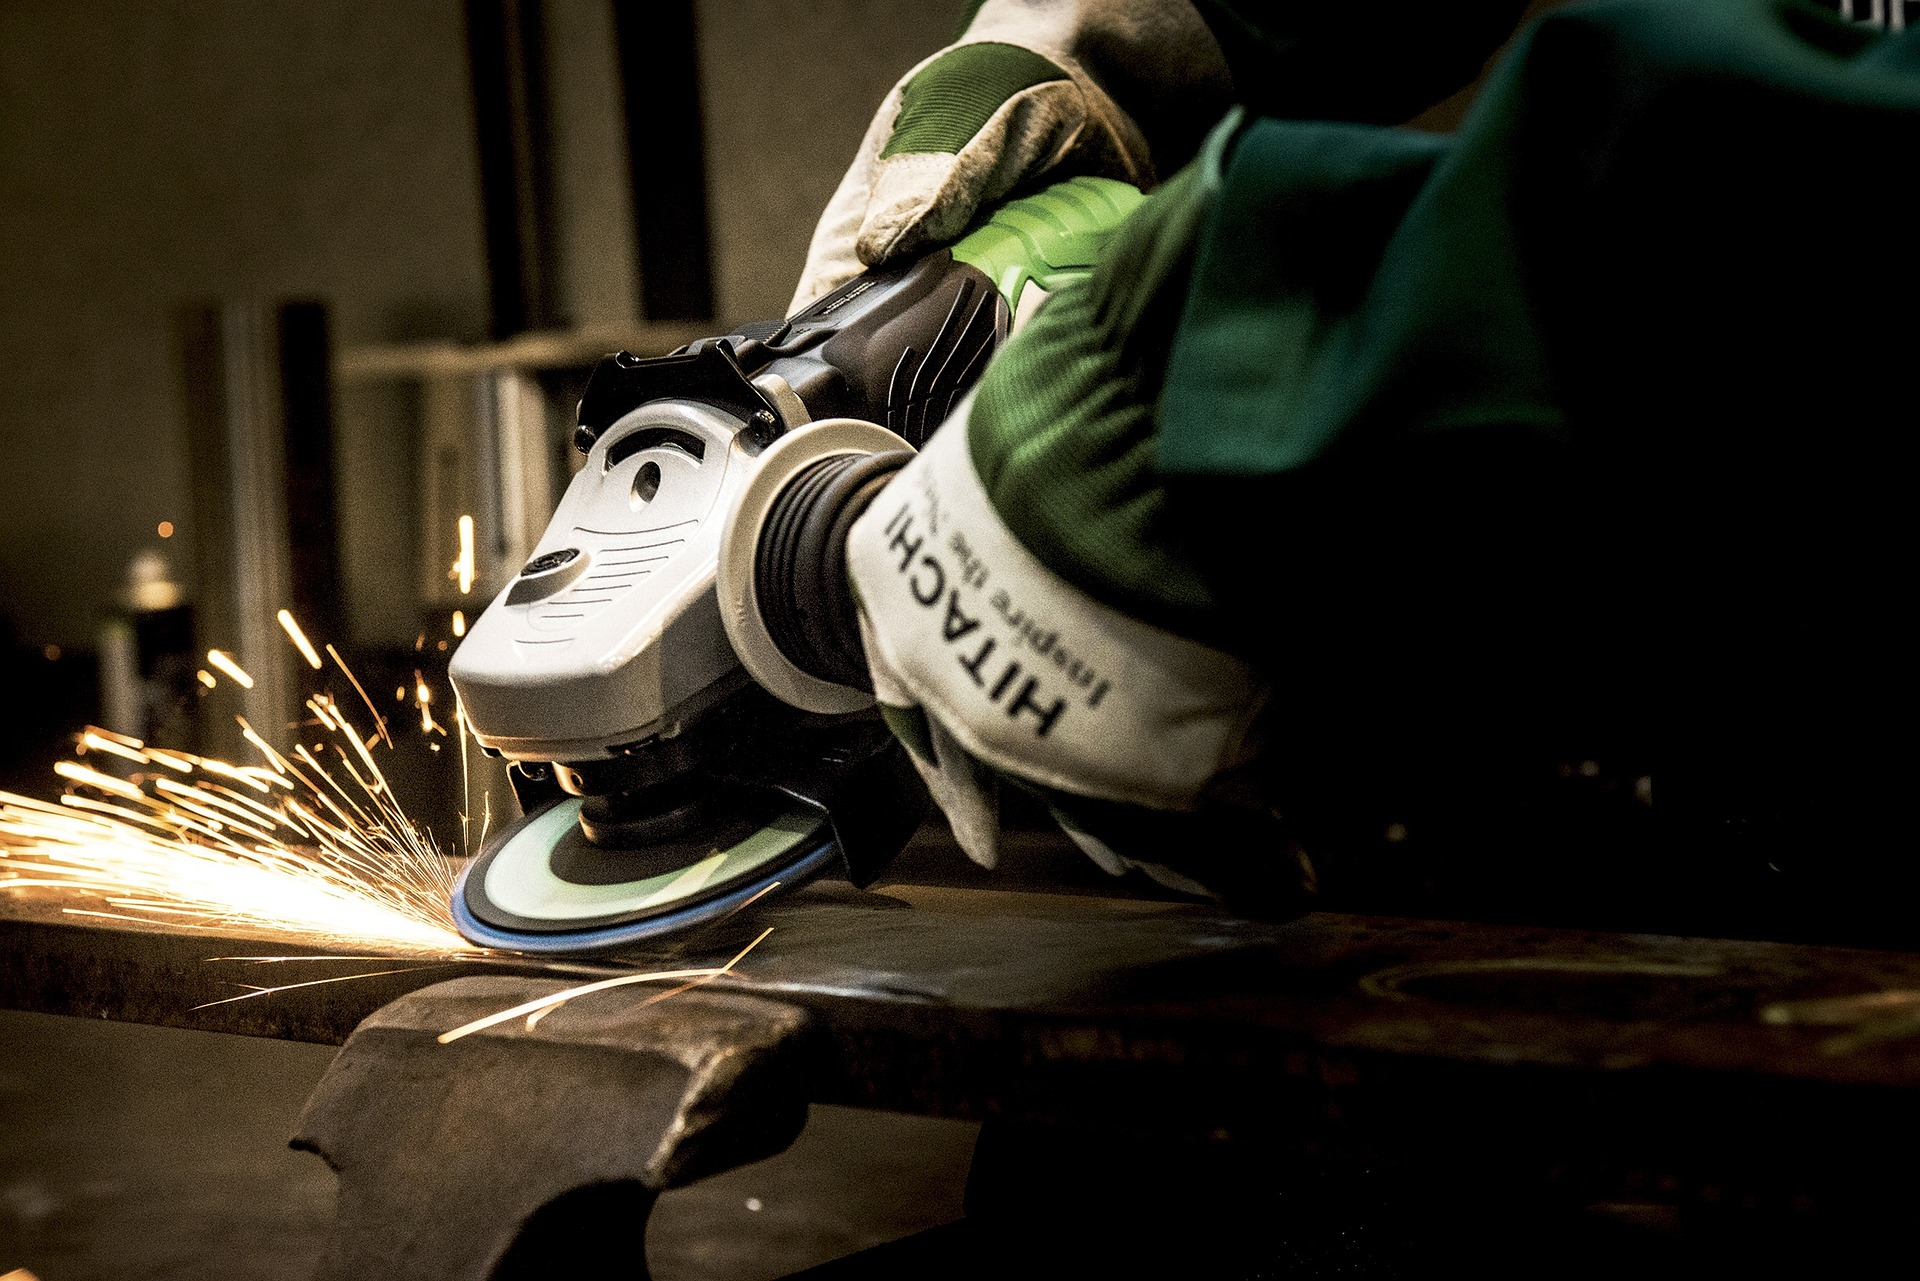 Sharpen Mower Blades With Angle Grinder